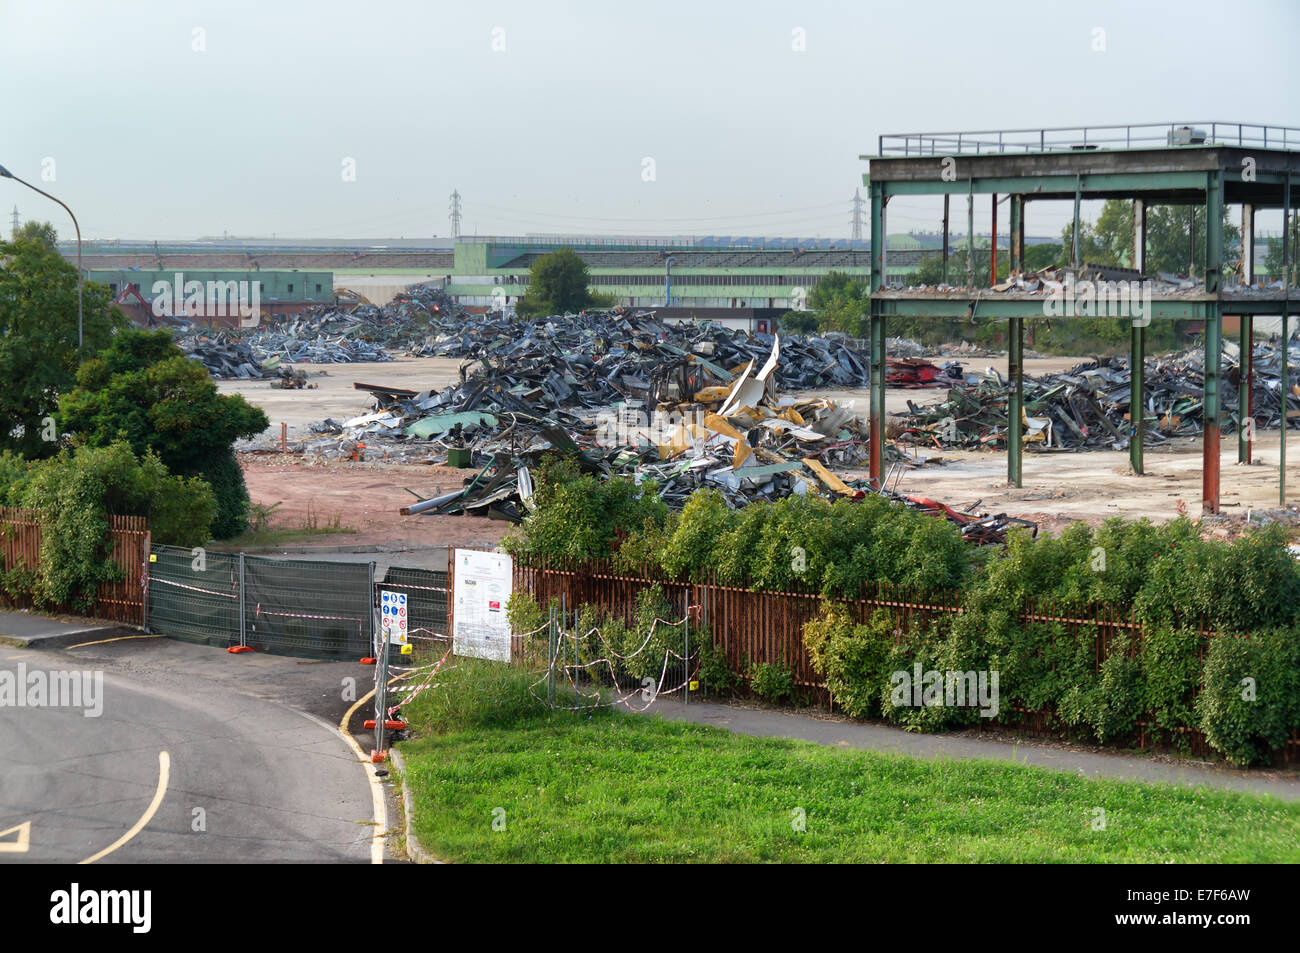 The Arese Alfa Romeo production area conversion in preparation of Milan expo 2015 - Stock Image